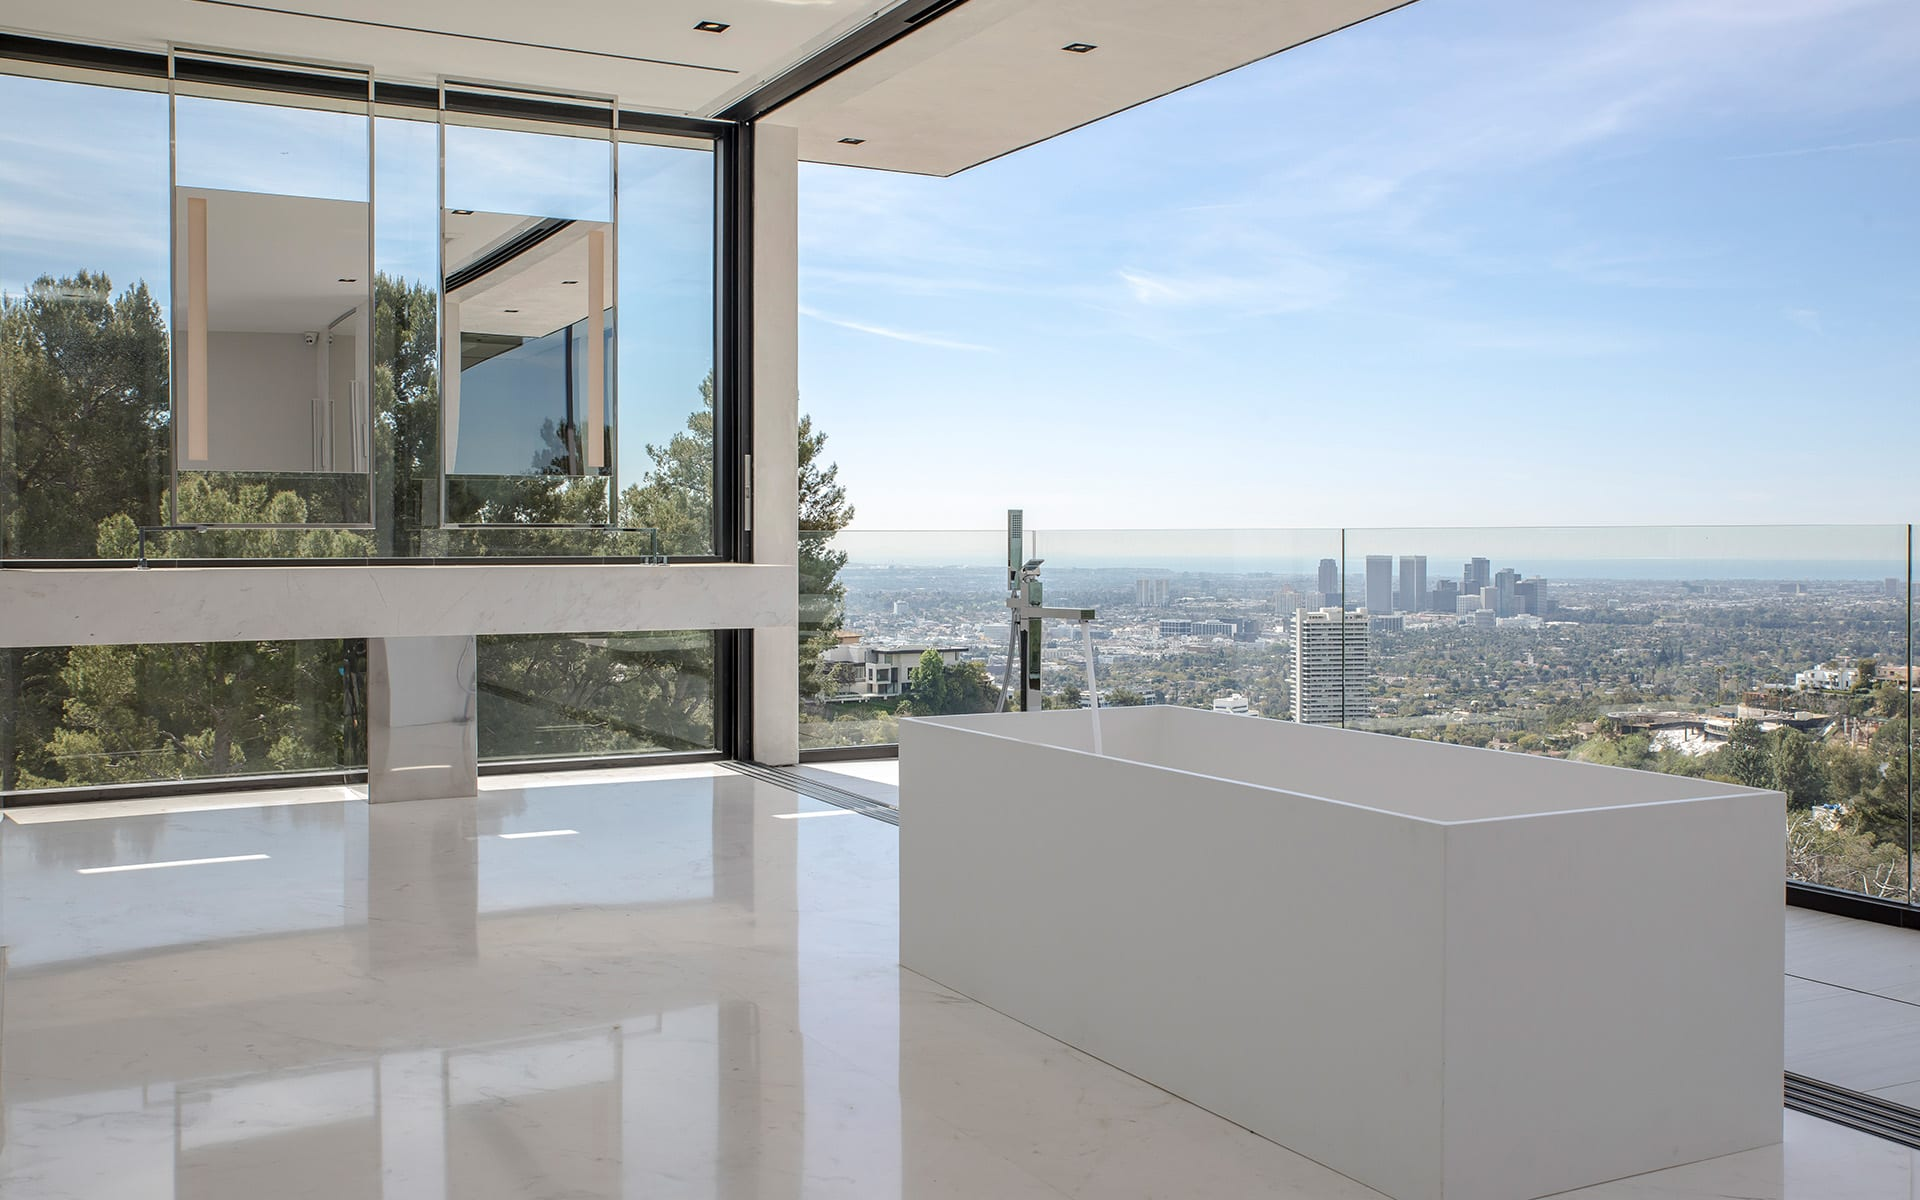 Additional photo for property listing at 1677 N Doheny Dr 1677 N Doheny Dr Los Angeles, Калифорния,90069 Соединенные Штаты